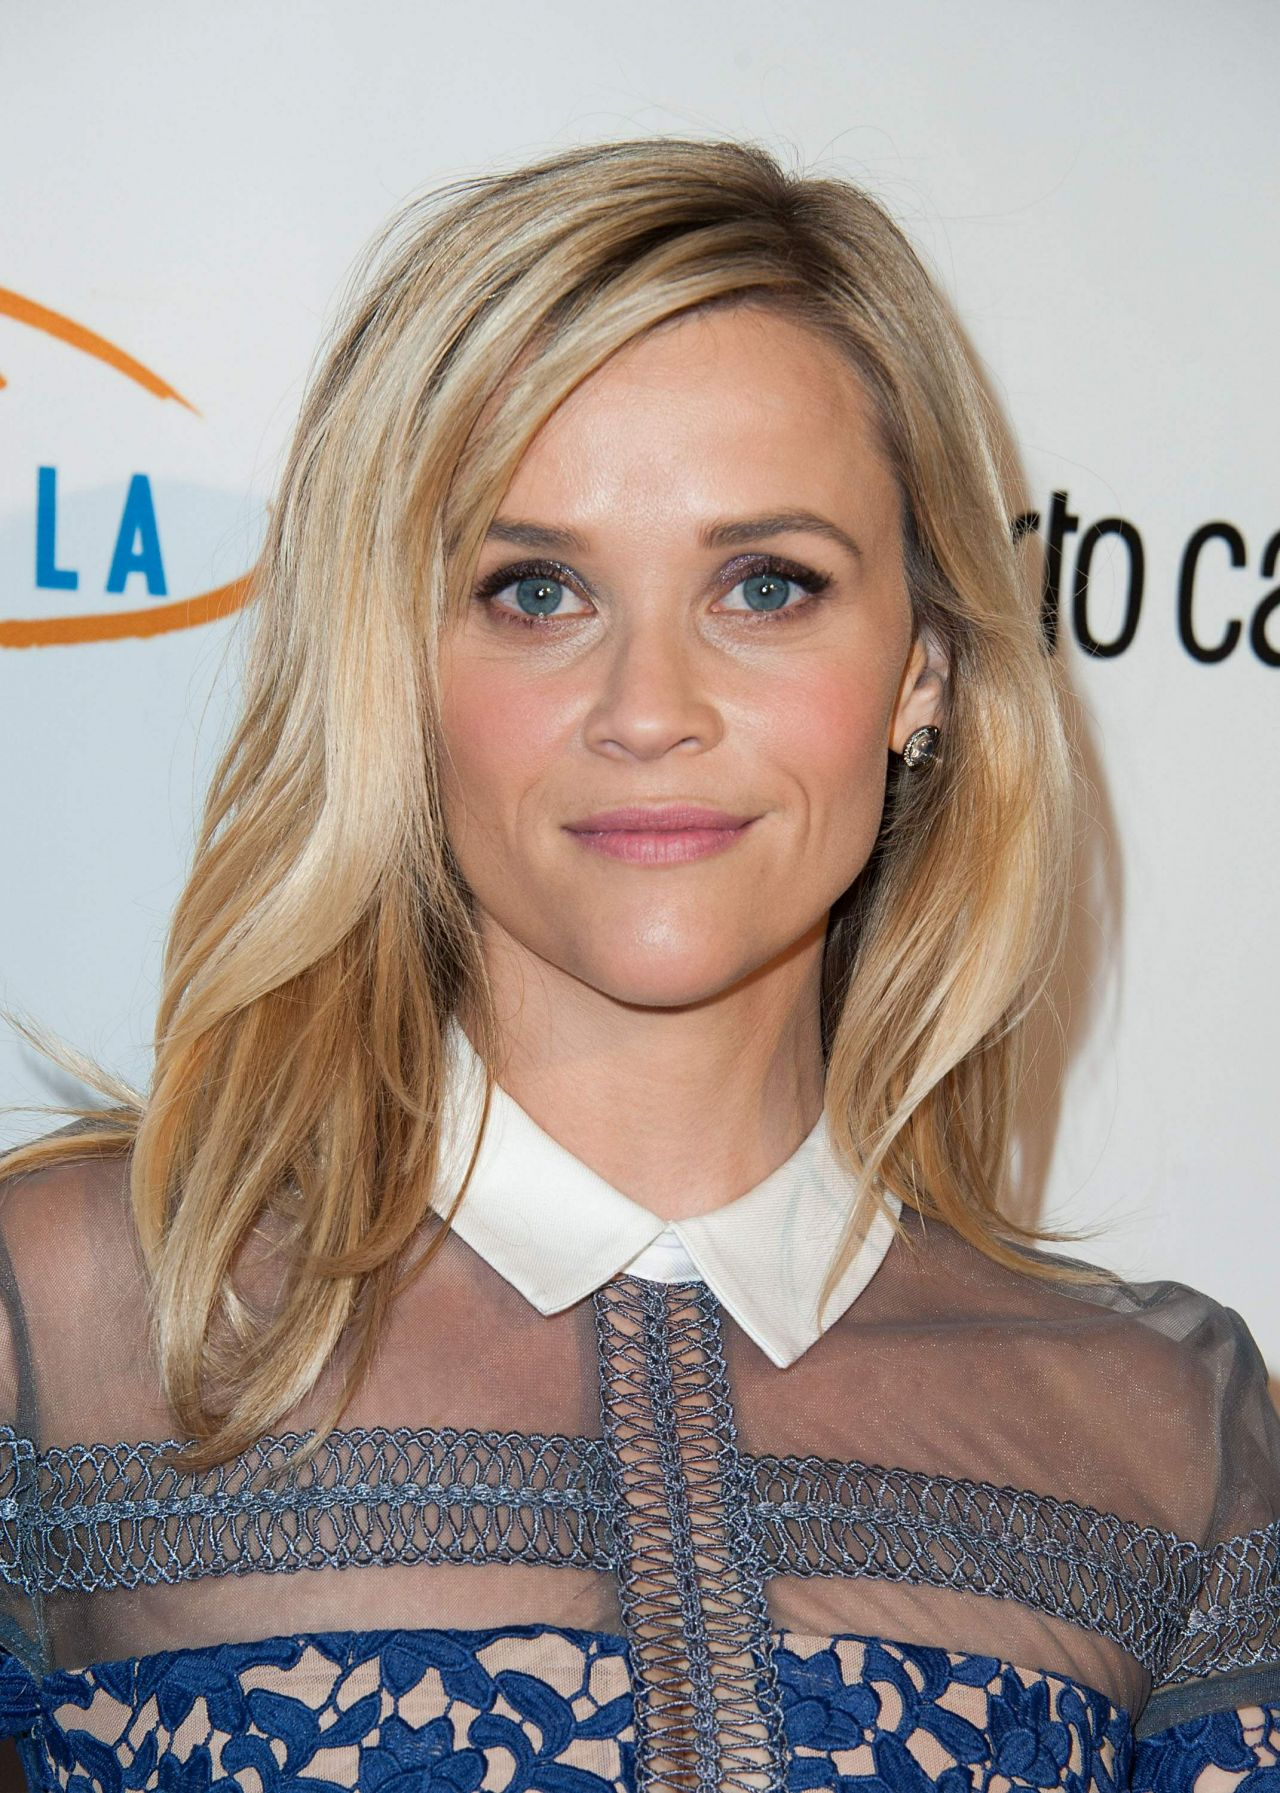 reese-witherspoon-2014-lupus-la-hollywood-bag-ladies-luncheon_6